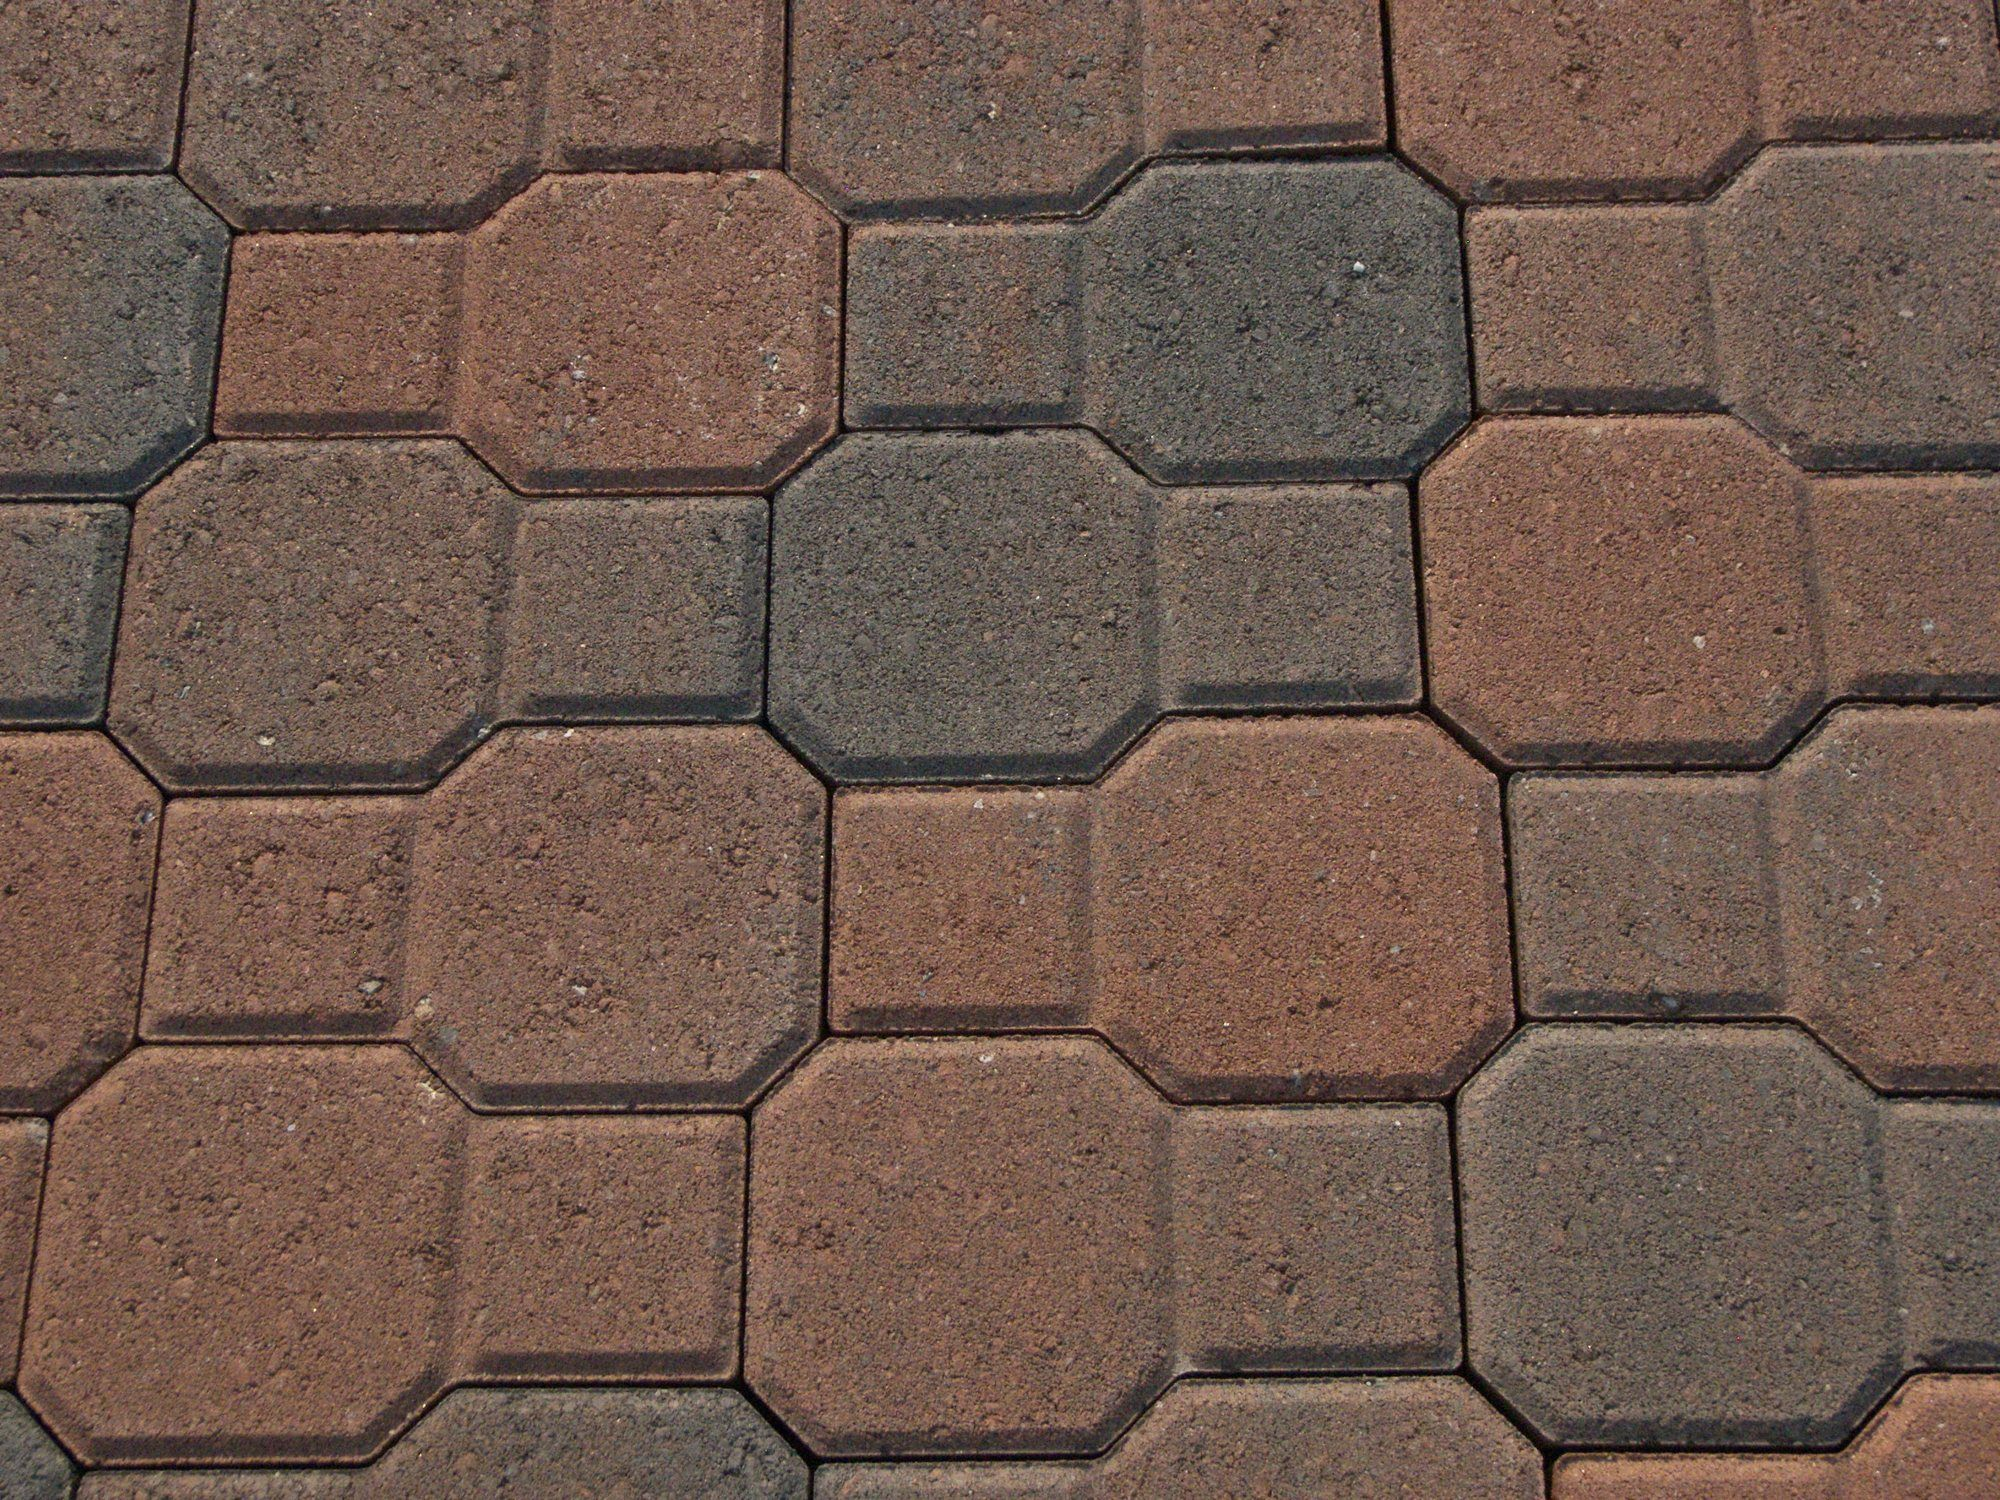 hgtv ideas a pavers image of popular concrete patio designs throughout all concept in brick designsall over paver good home